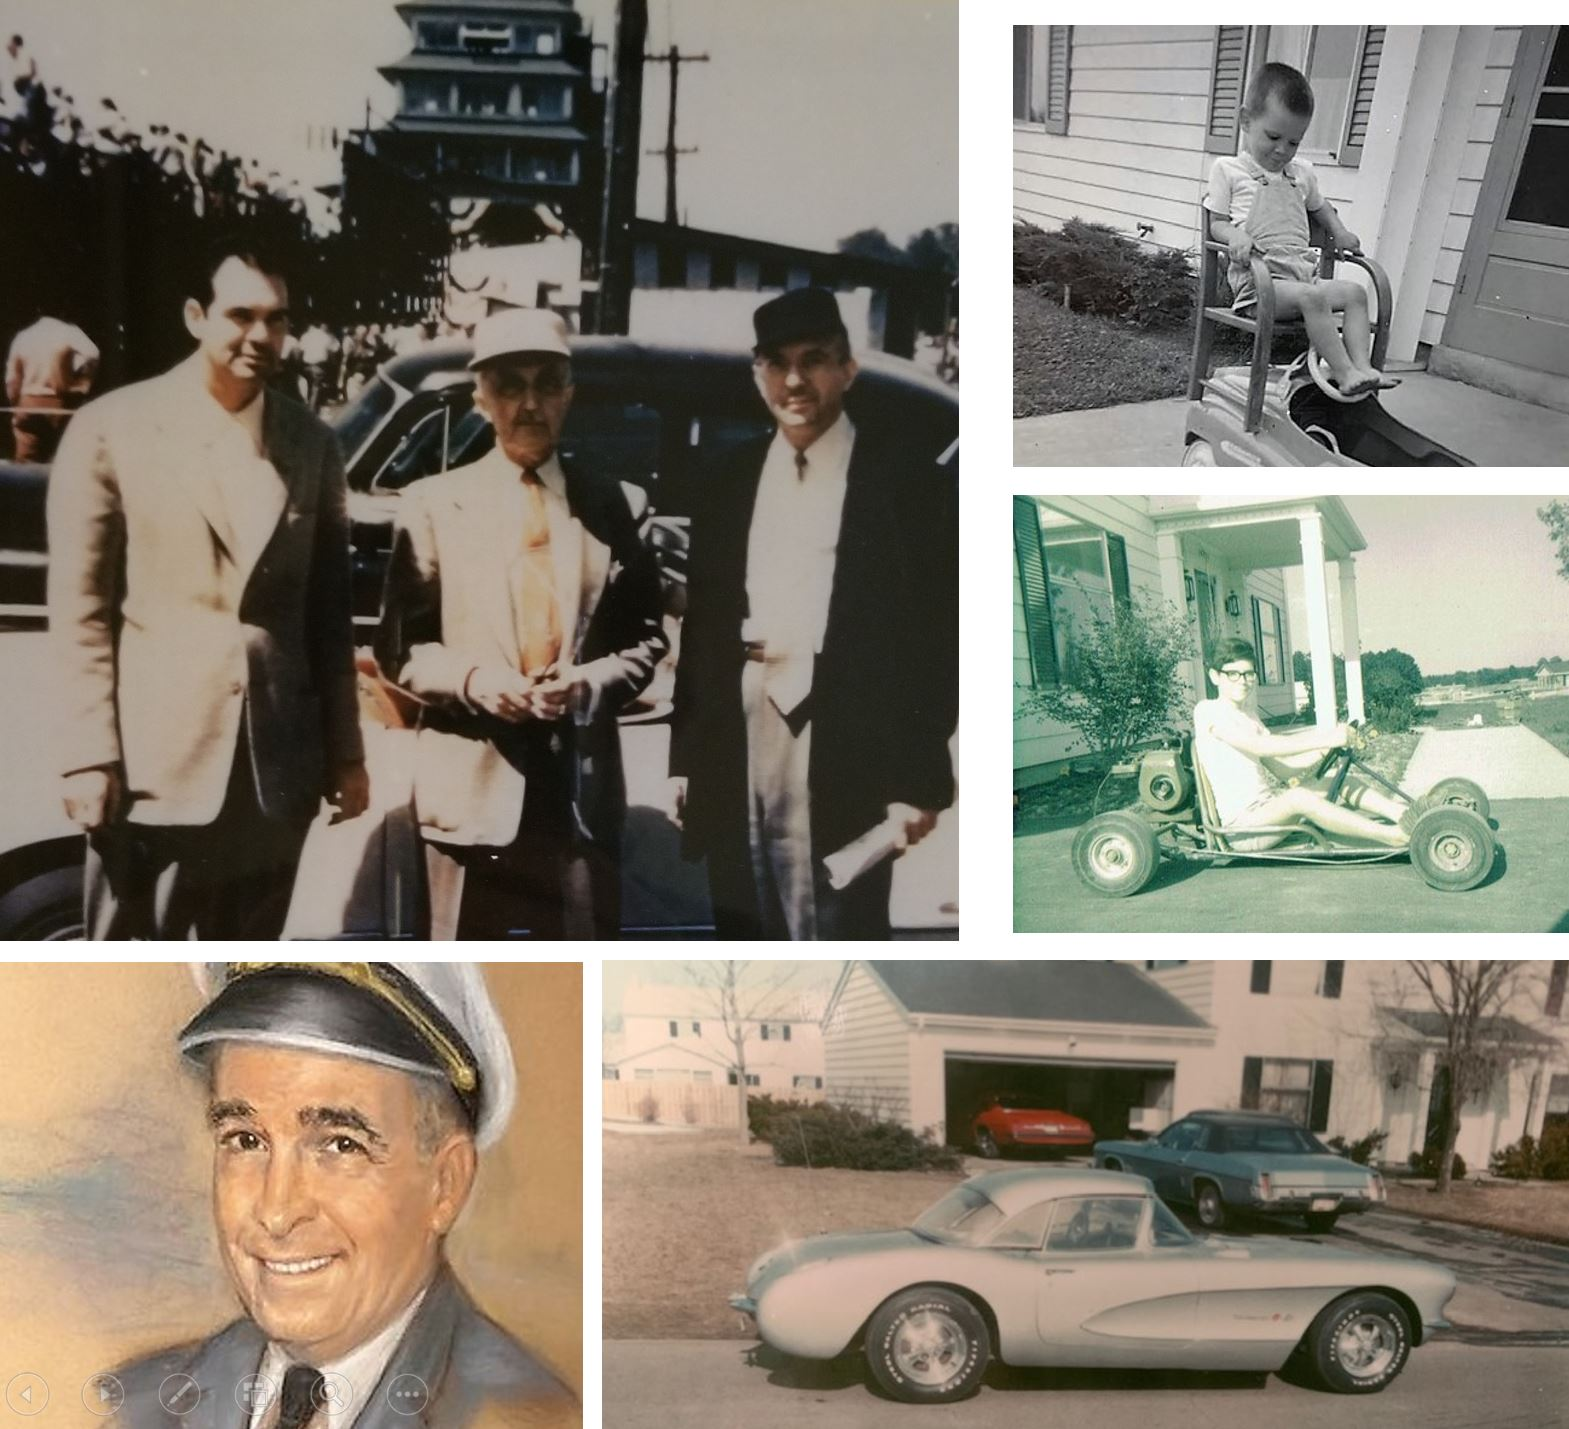 Top left: My uncles Dick, Ray Haroon and Norm Schafer at the IMS standing in front of a 1954 Corvette.  Bottom left: Grandpa Otto Schafer. Top right/middle: My first 'car' was a Peddle car, followed by my first powered car, a Go-cart, then the first of six corvettes.